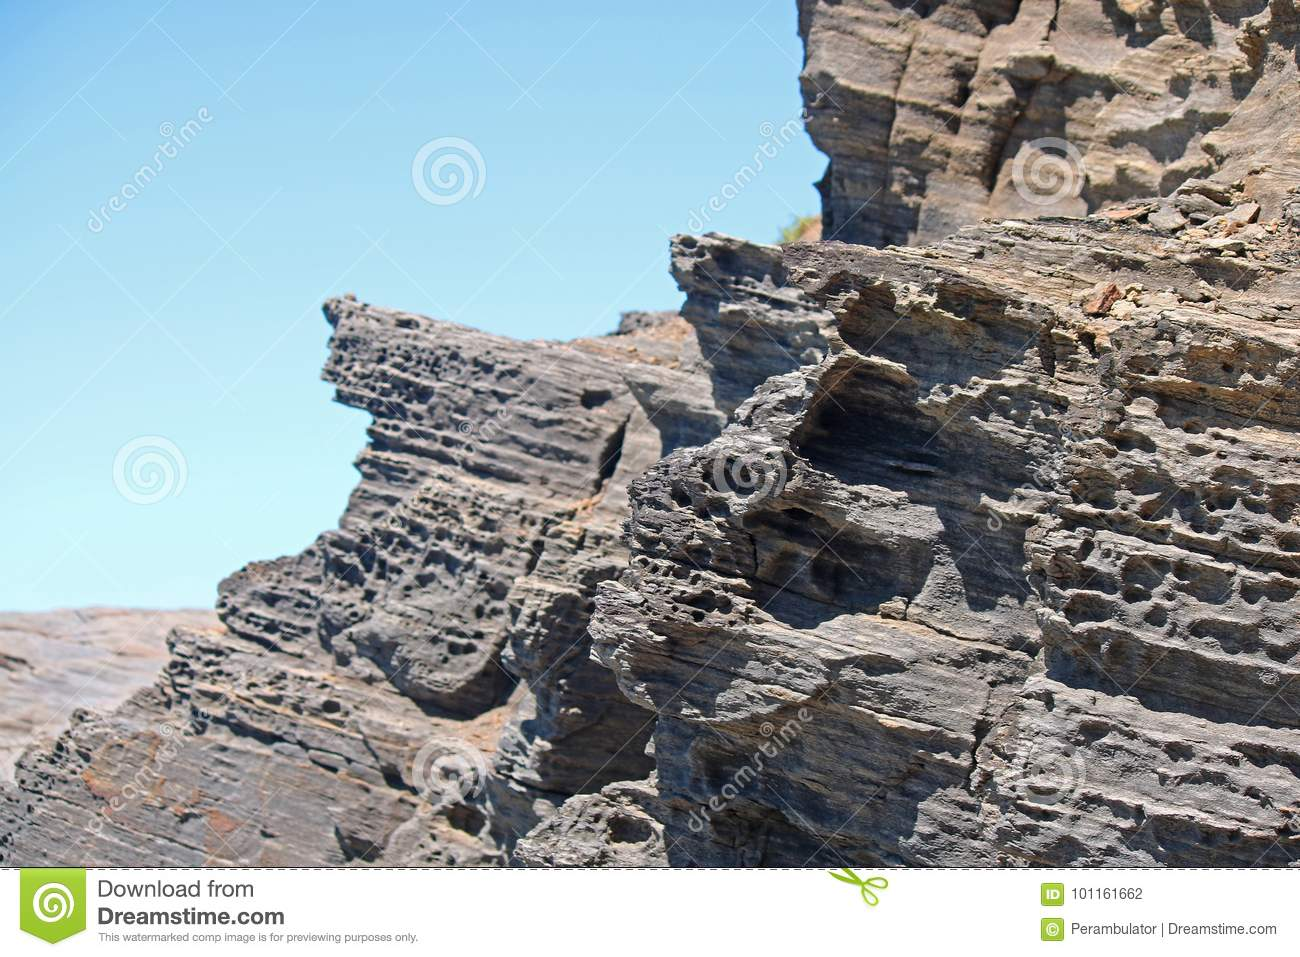 POROUS ROCK IN LAYERS